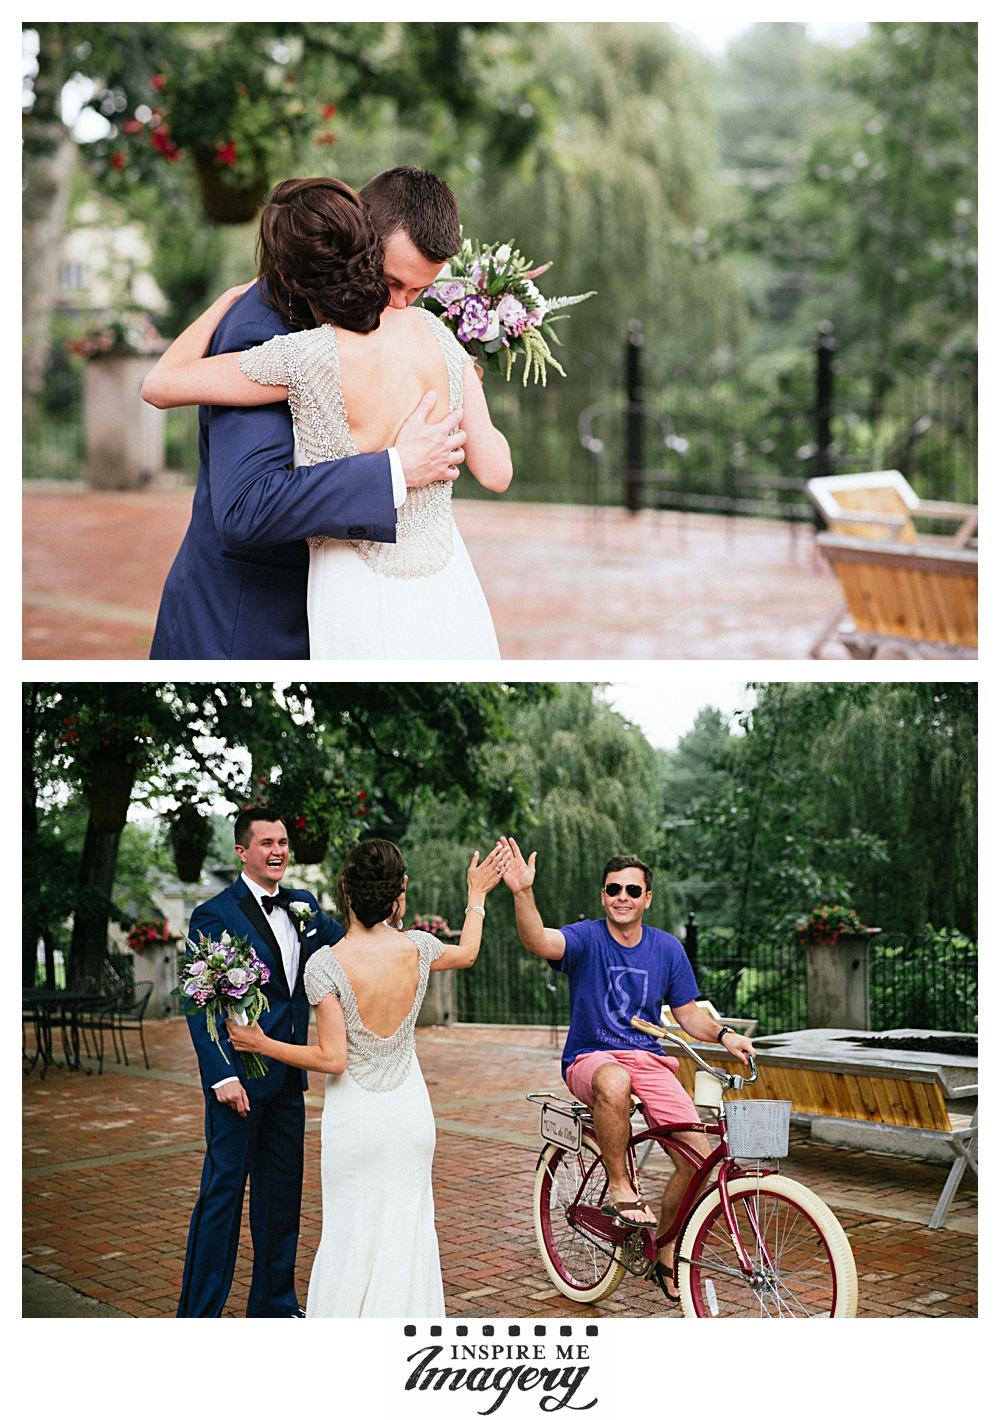 An emotional first look followed by high-fives from a guest who happened to be enjoying the grounds nearby.